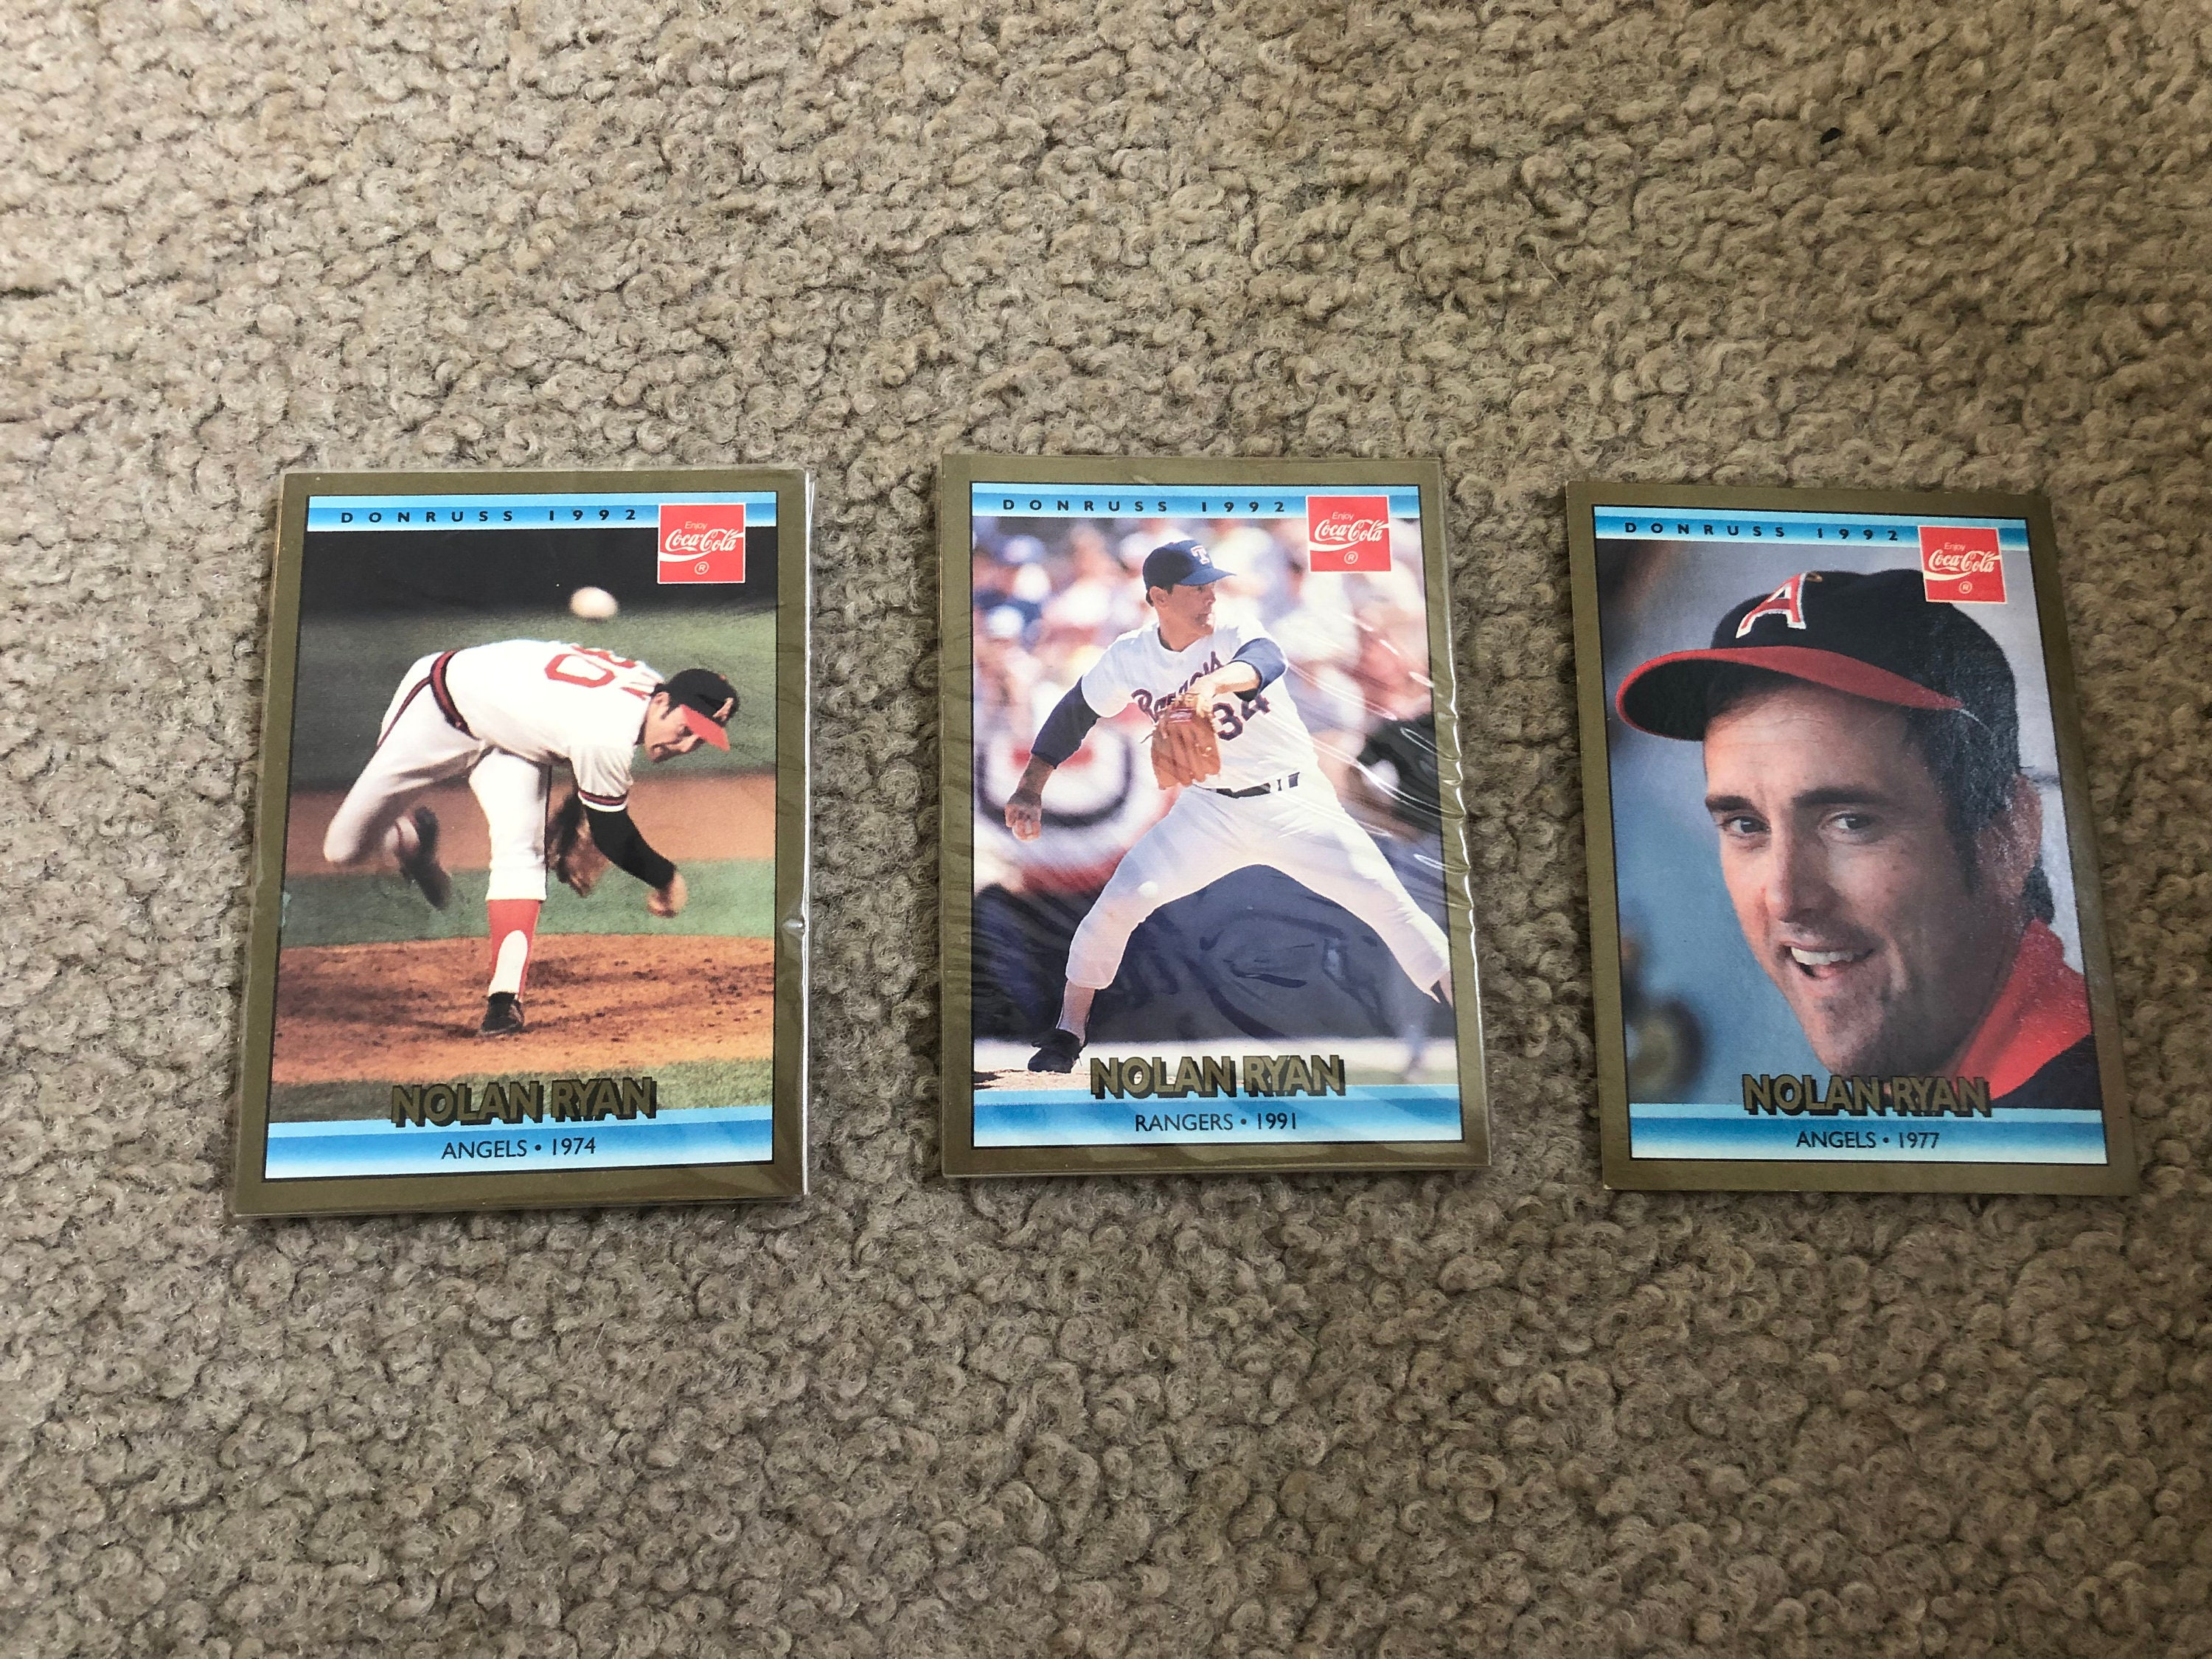 Nolan Ryan Baseball Cards 1991 1992 Leaf Inc Plus Two Packets With Other Cards